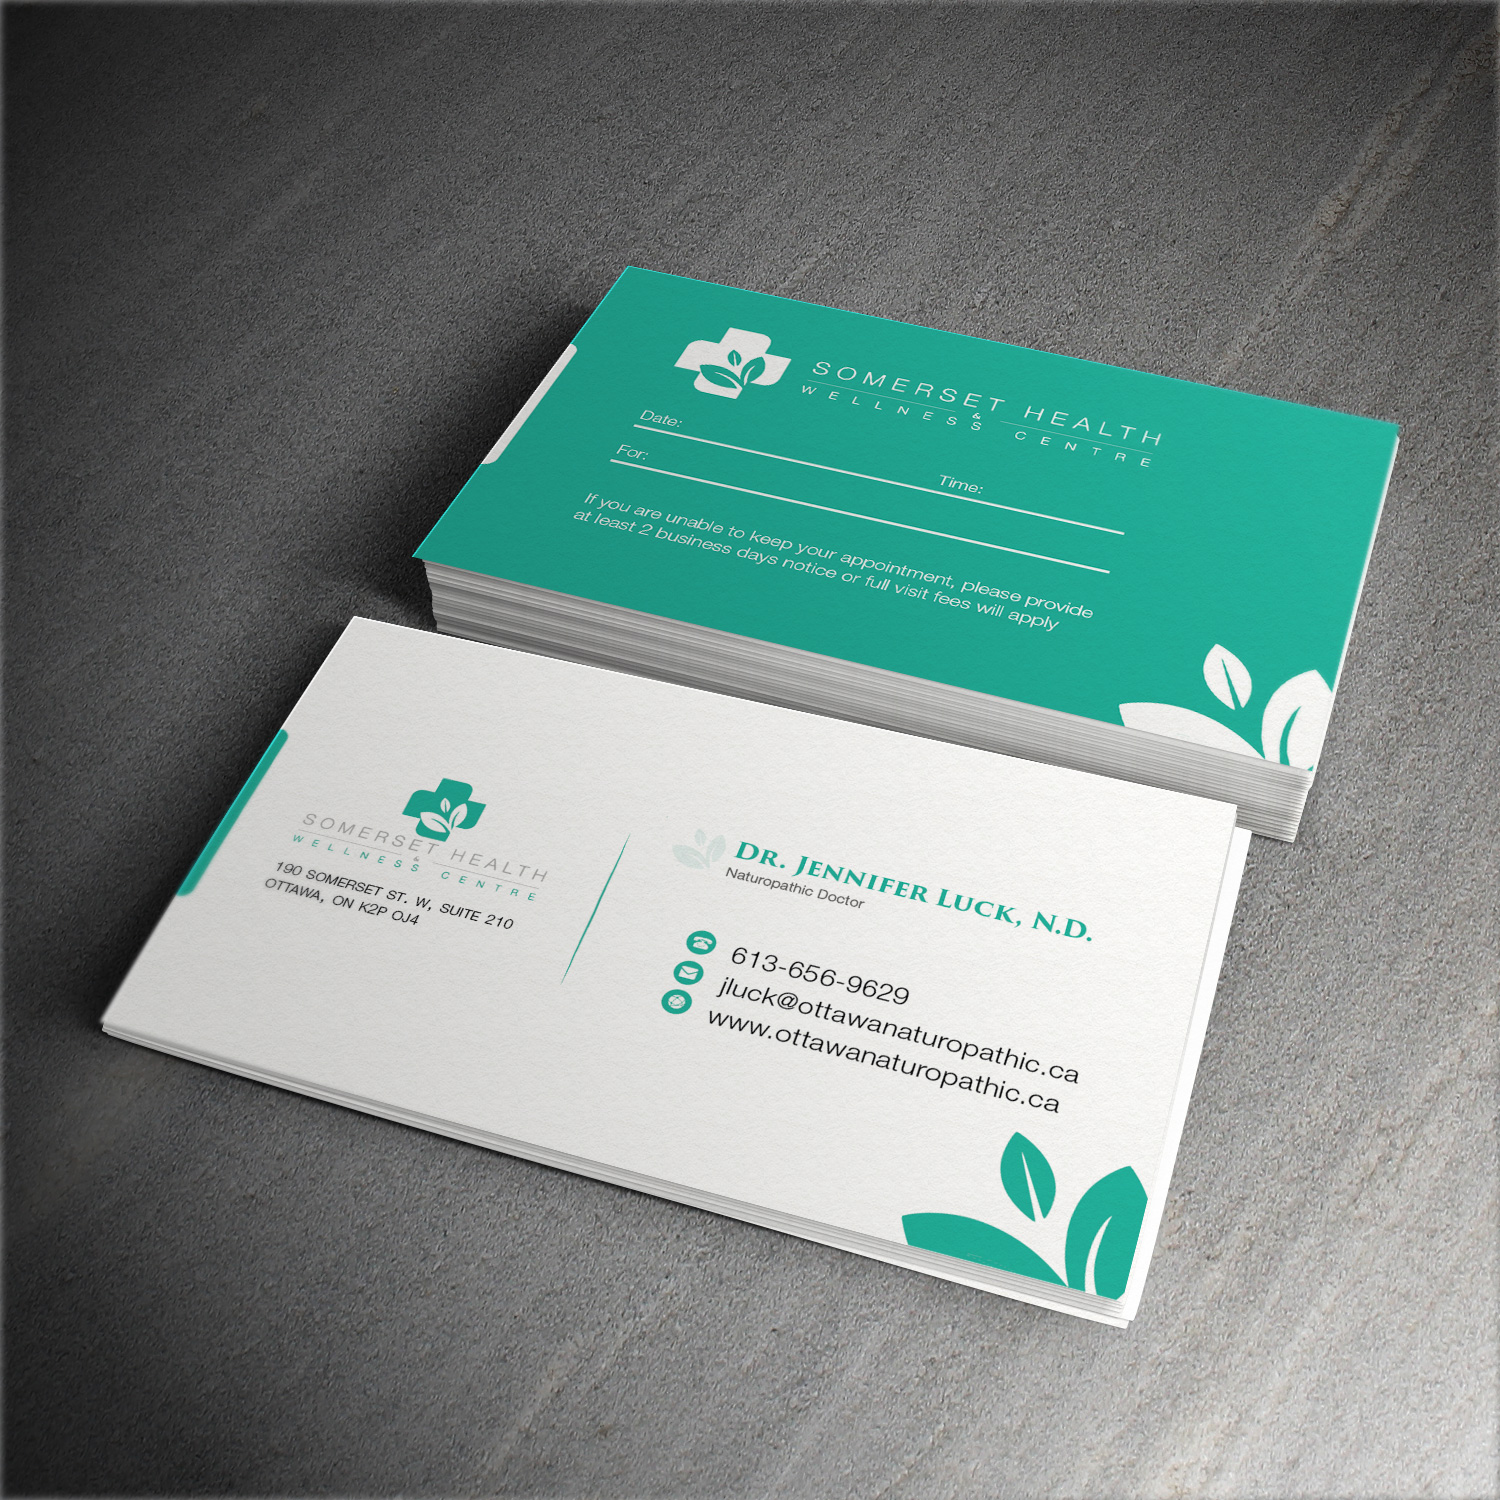 Serious upmarket health and wellness business card design for business card design by waqas ahmed for somerset health wellness centre design 11104102 reheart Image collections